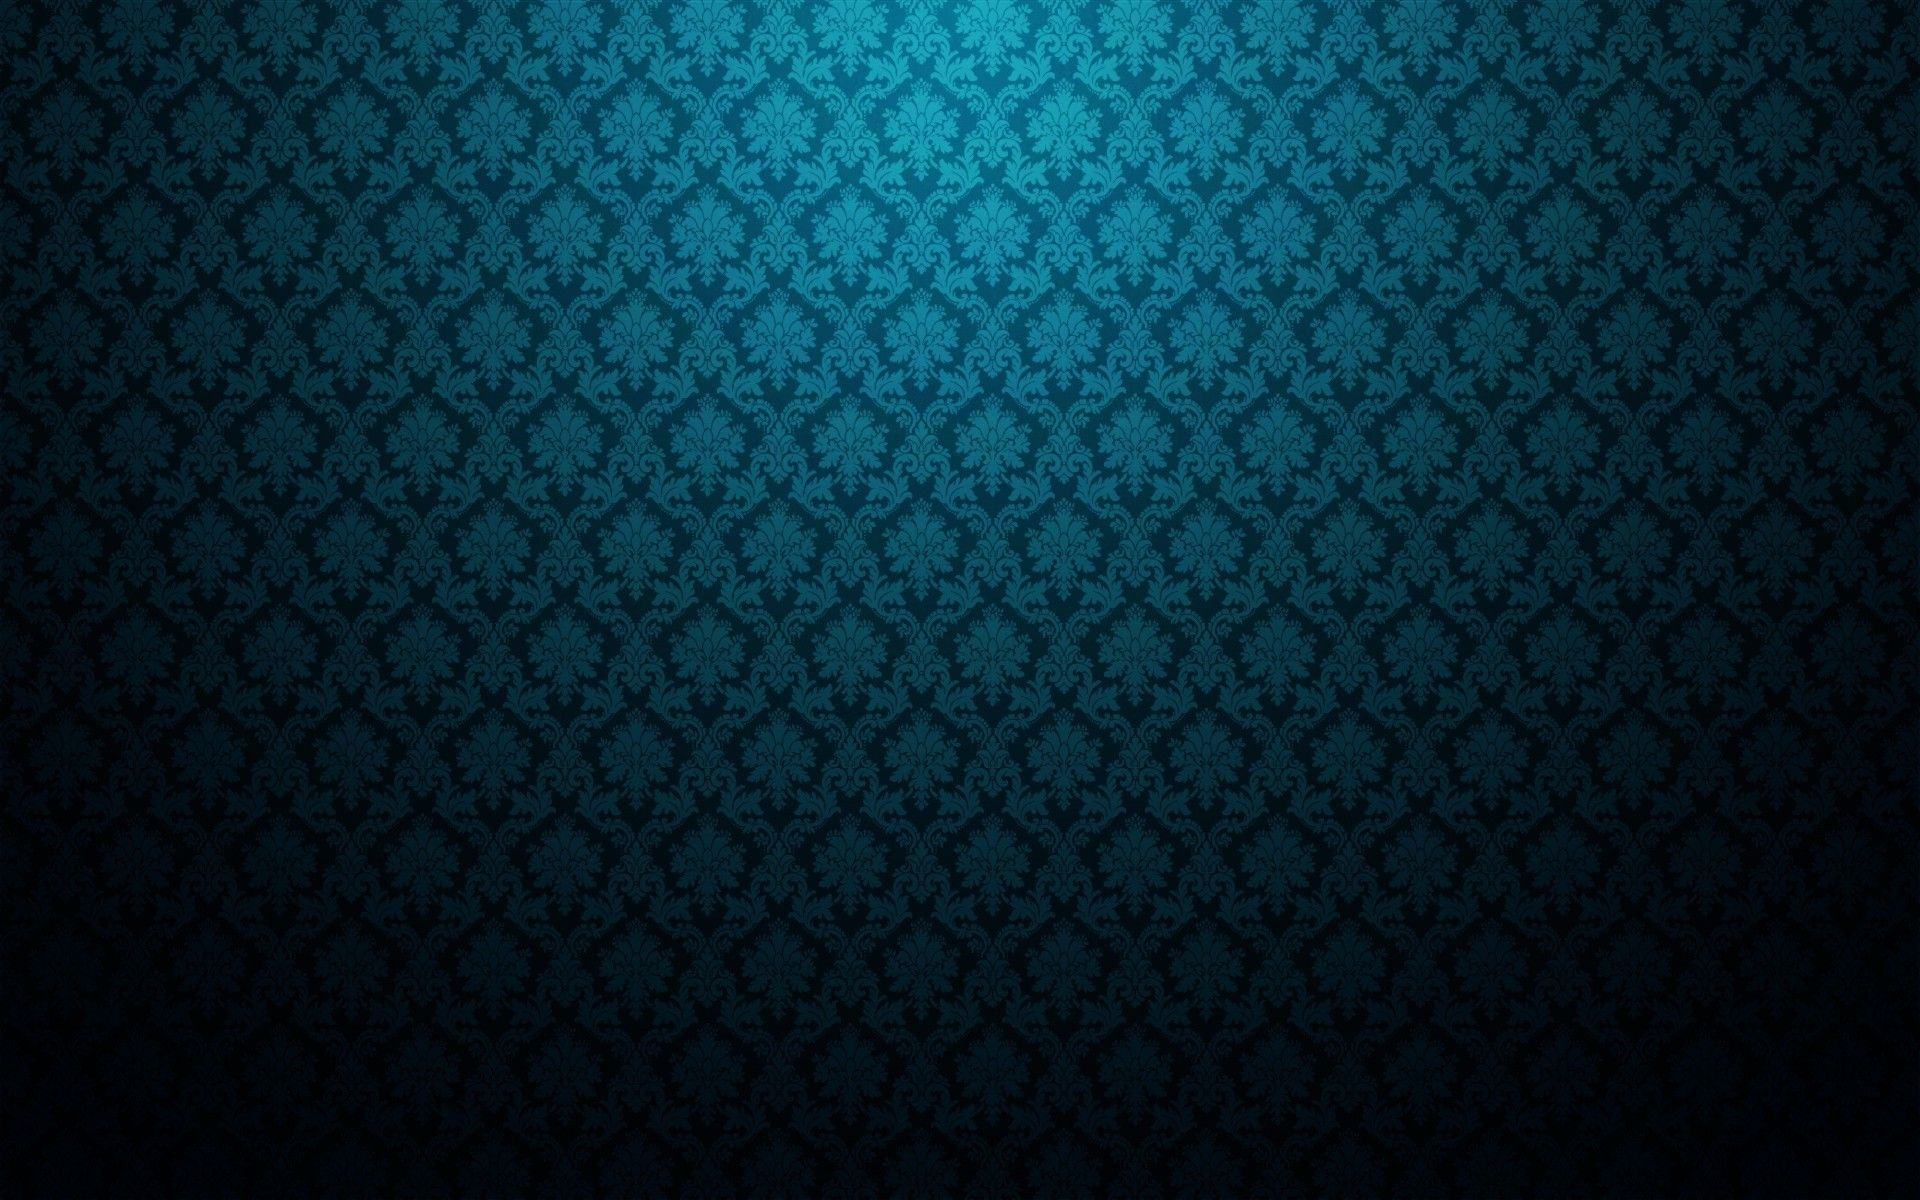 Turquoise Vintage Wall Pattern Wallpaper 5287 Blue Wallpapers